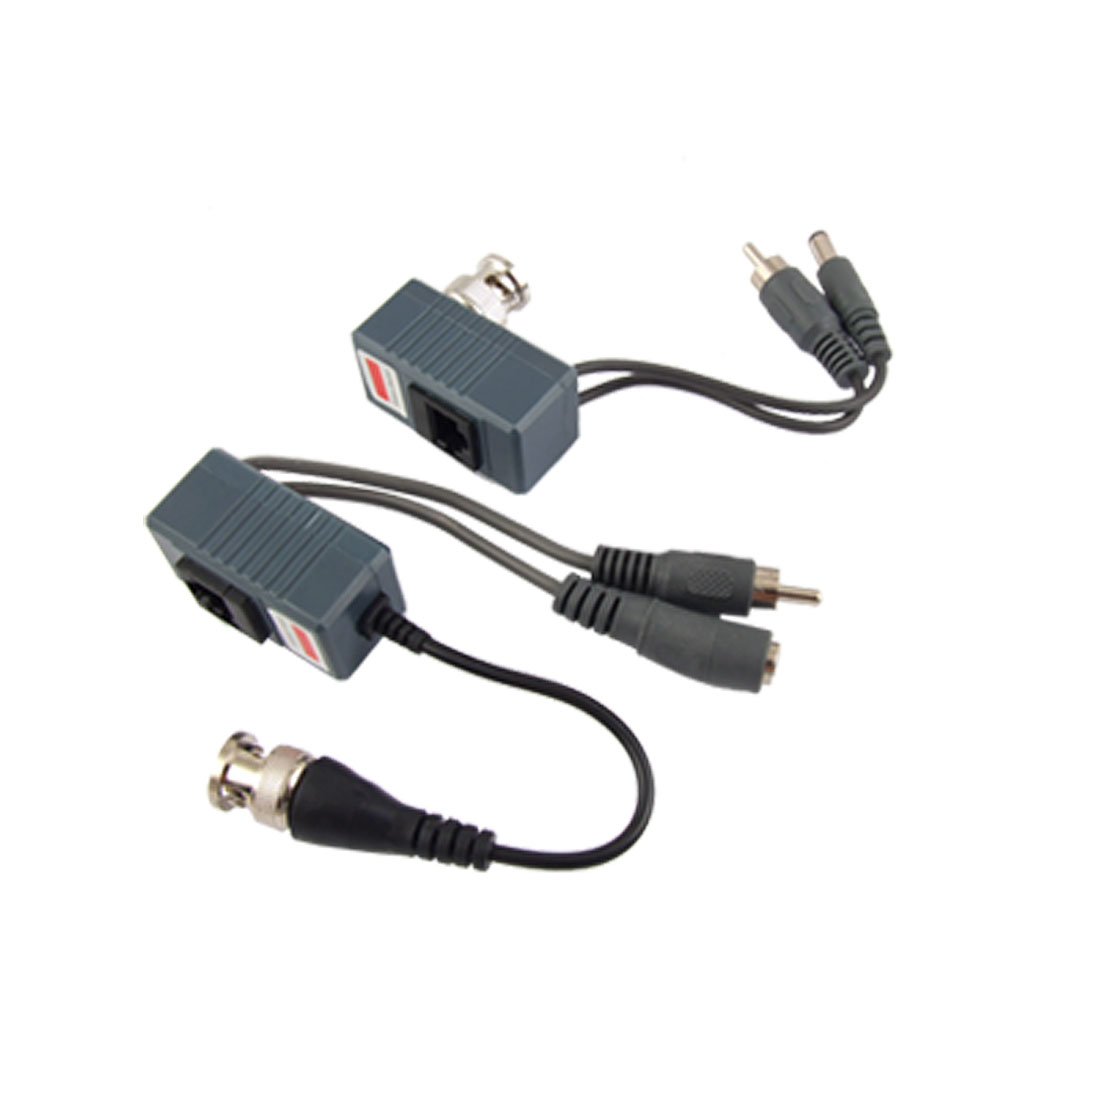 1 Port UTP Cat5 BNC Power Video Audio Balun Transceiver 2pcs for CCTV Security System